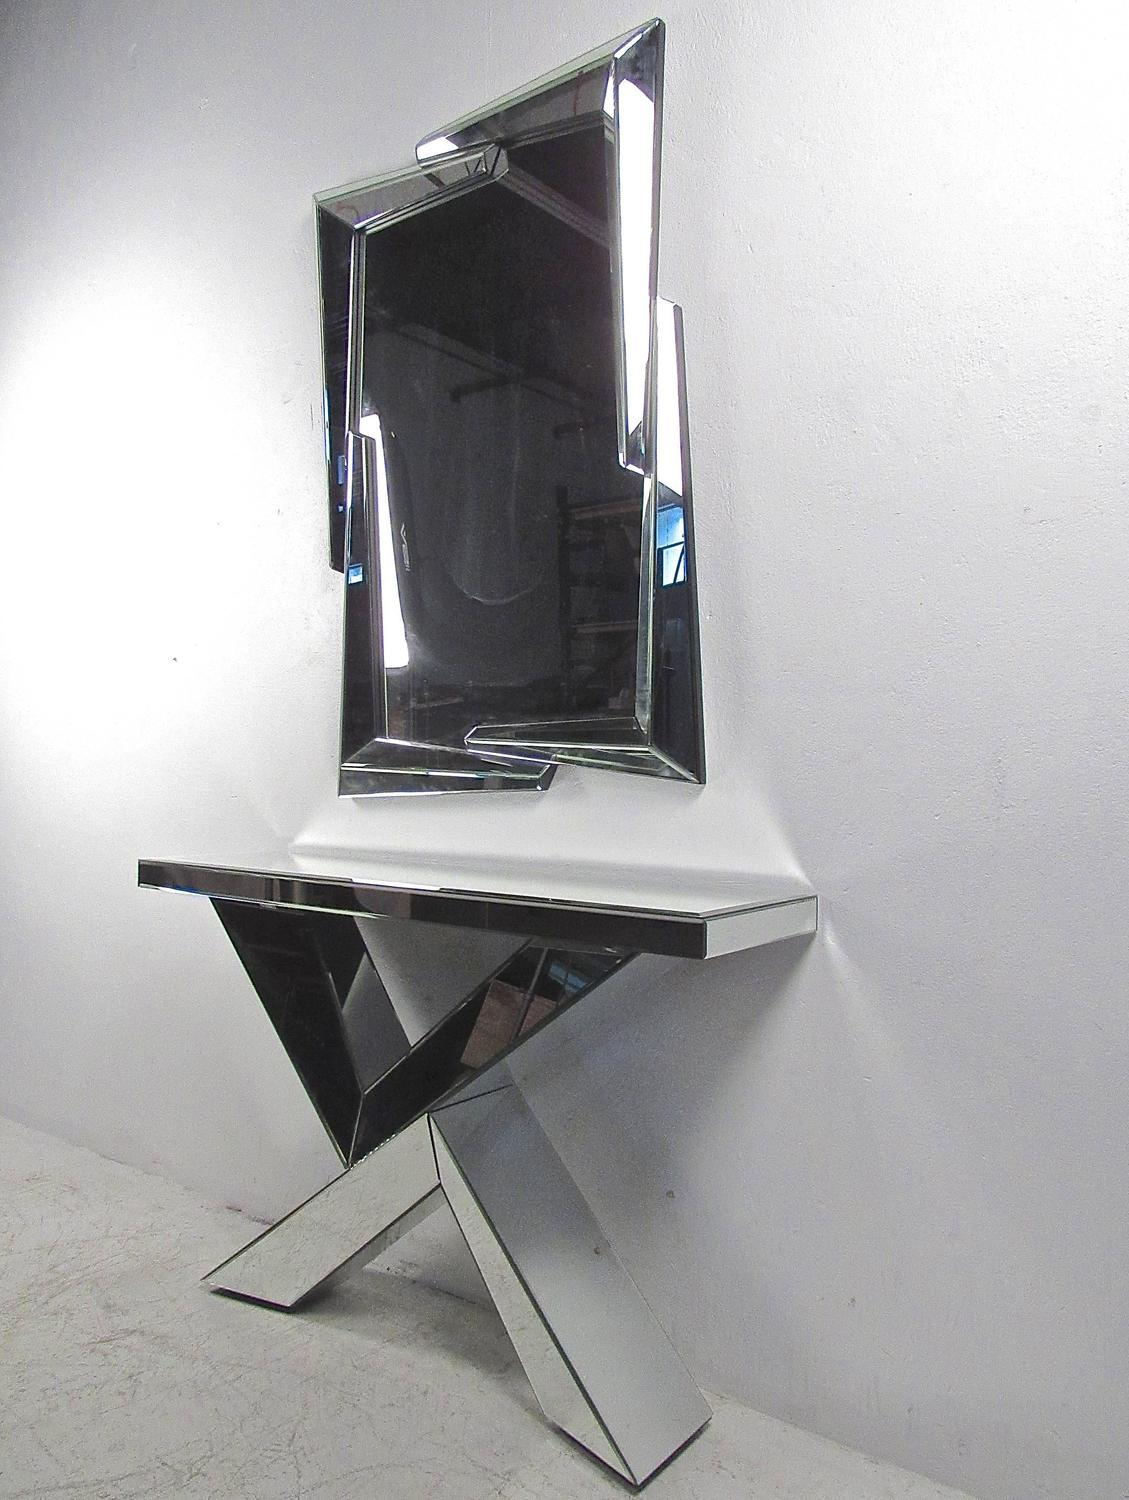 Mid century modern style mirrored console table with wall mirror for sale at 1stdibs - Modern console table with mirror ...